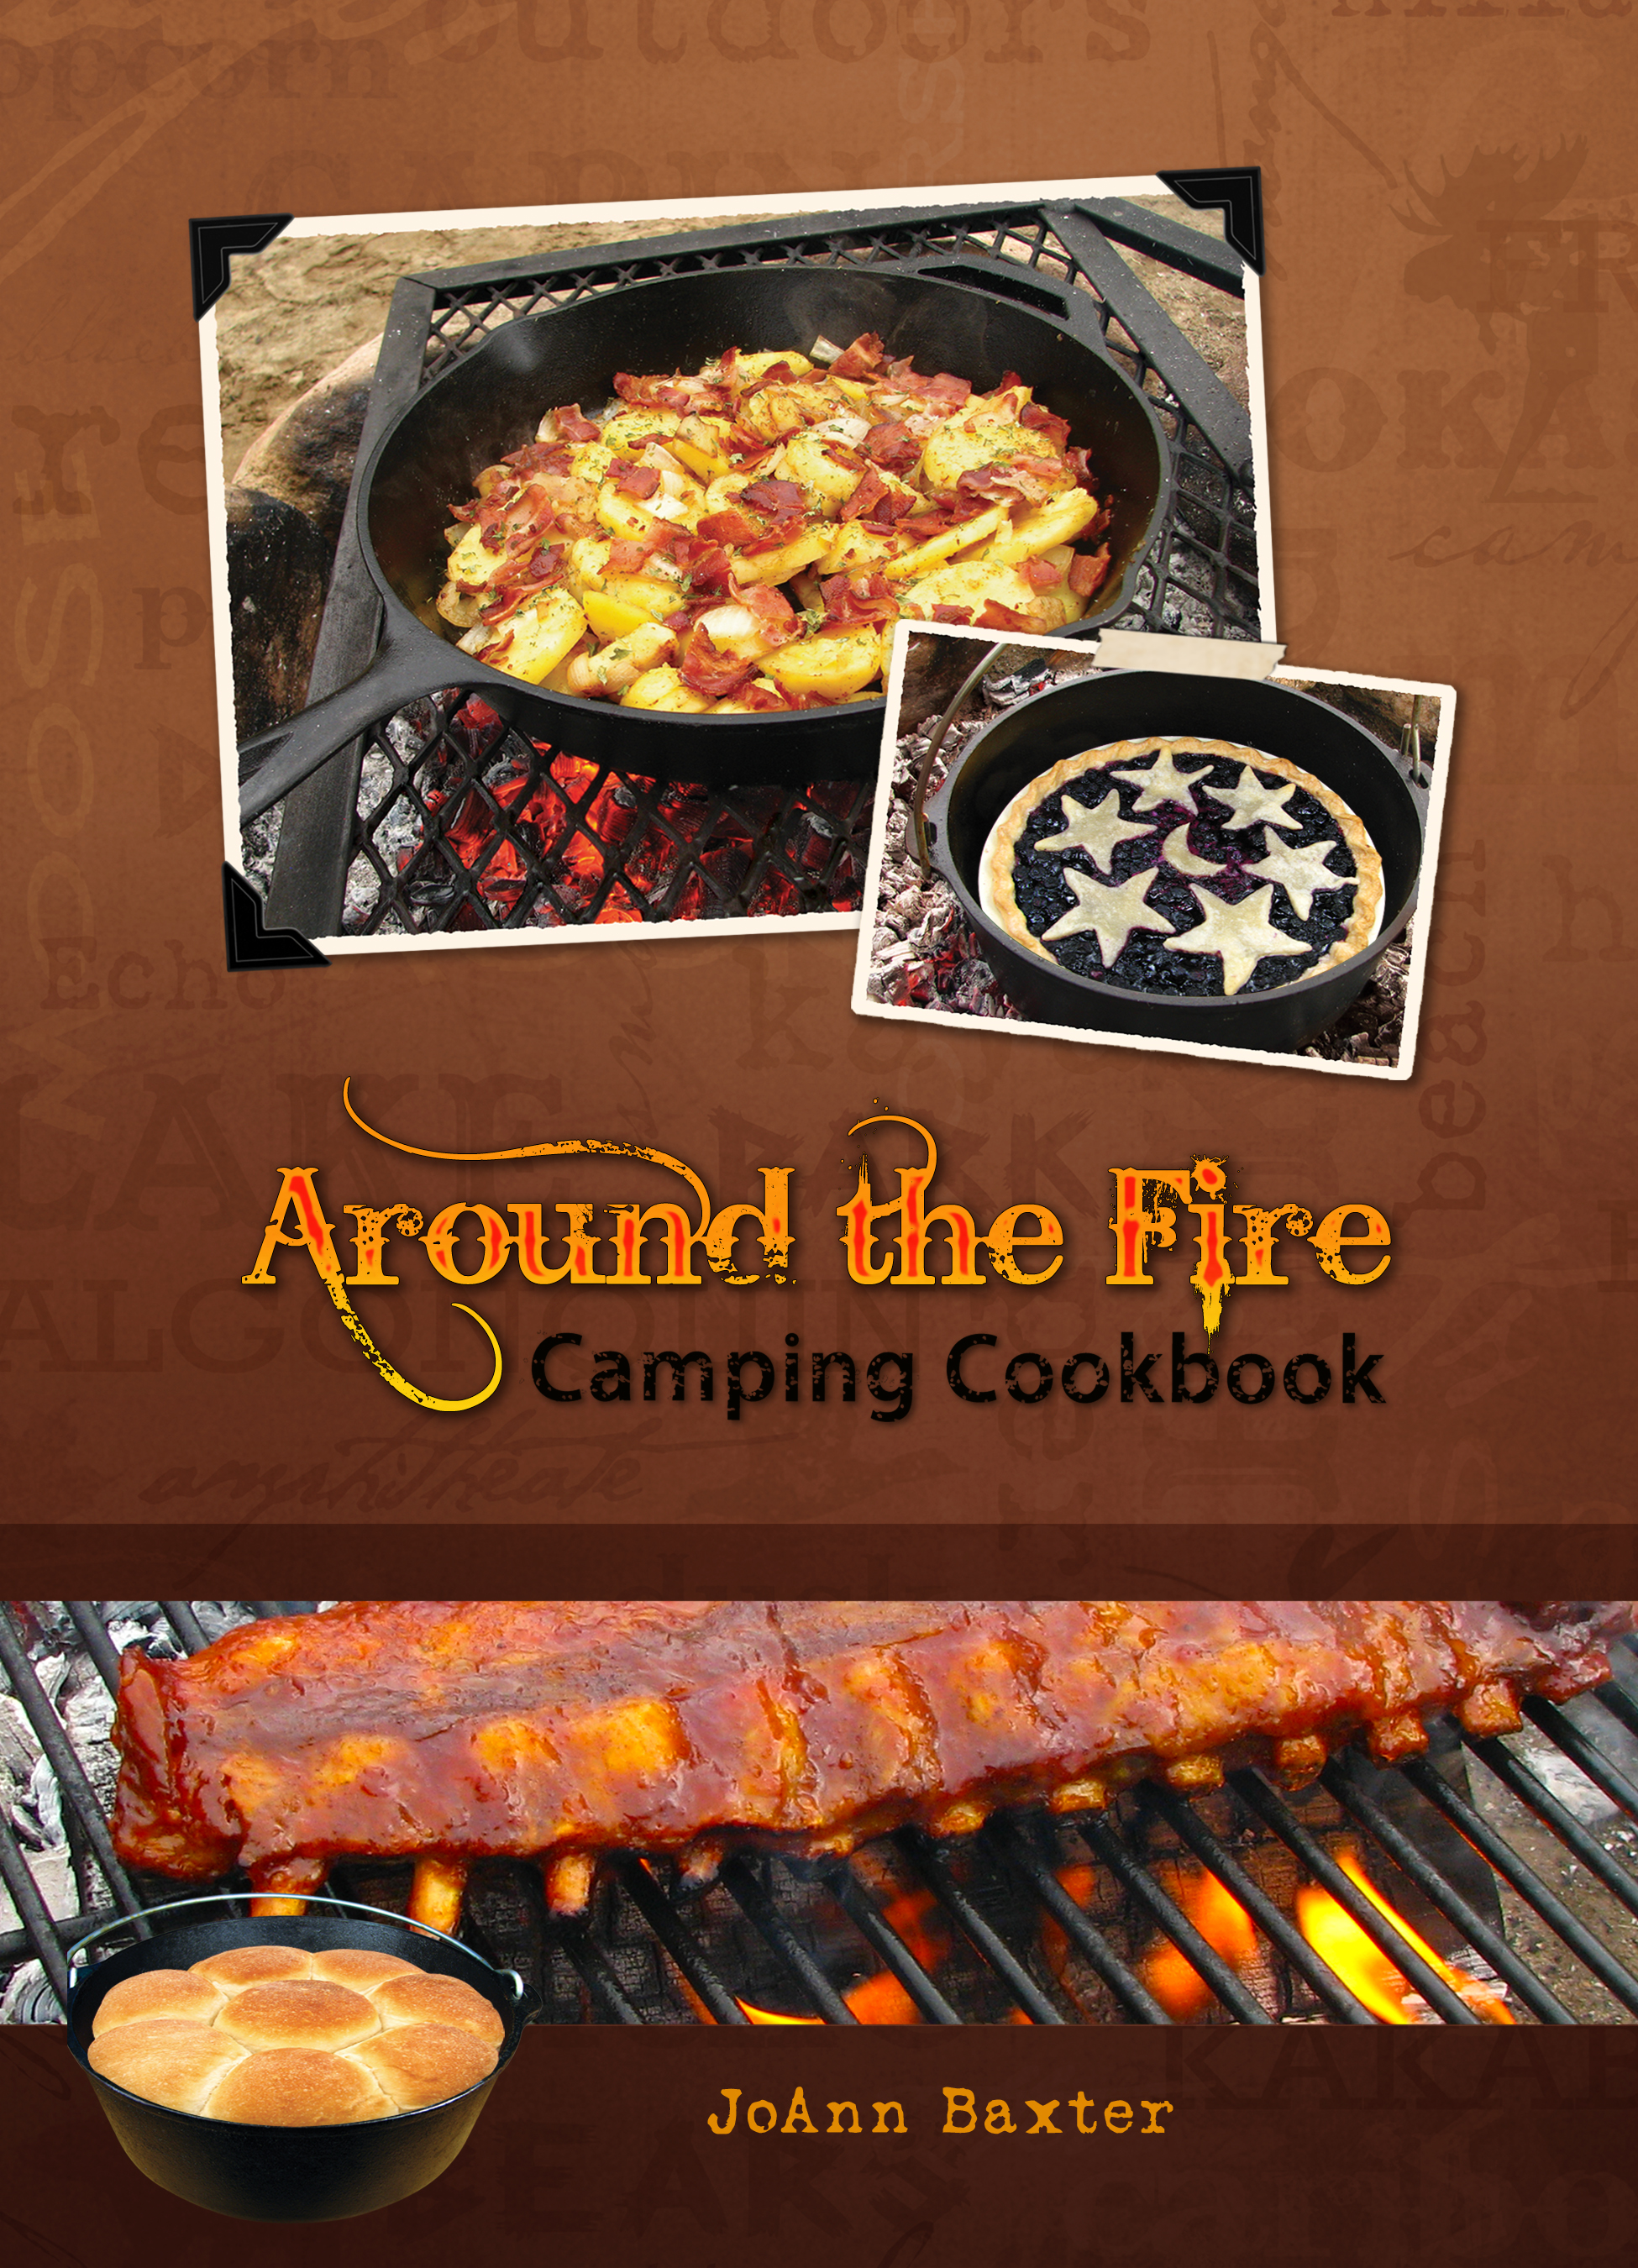 Around the Fire Camping Cookbook